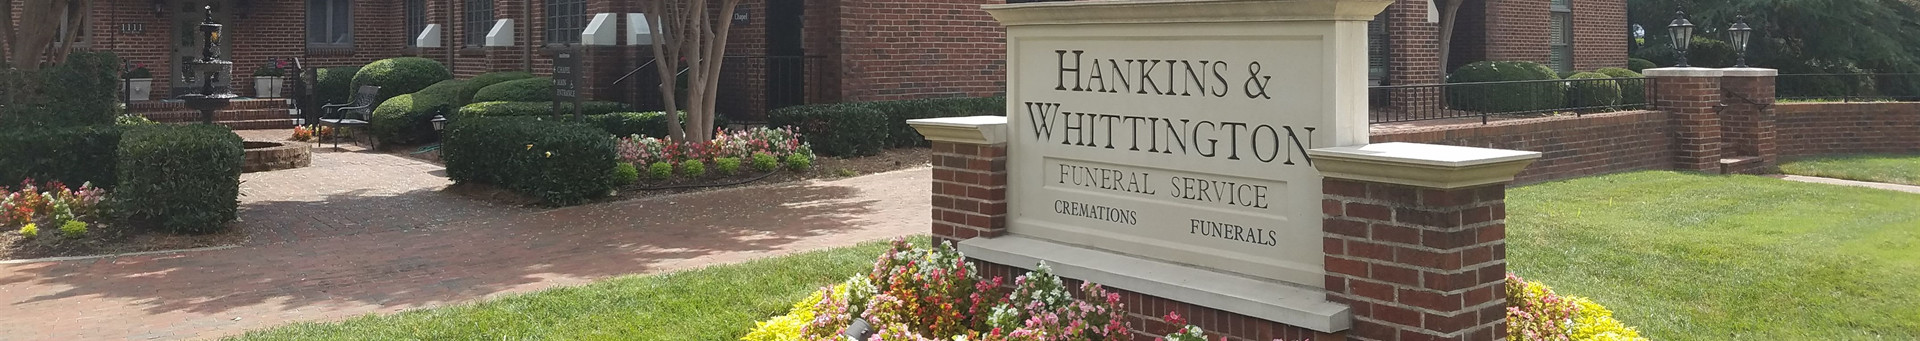 About Us | Hankins & Whittington Funeral & Cremation Service